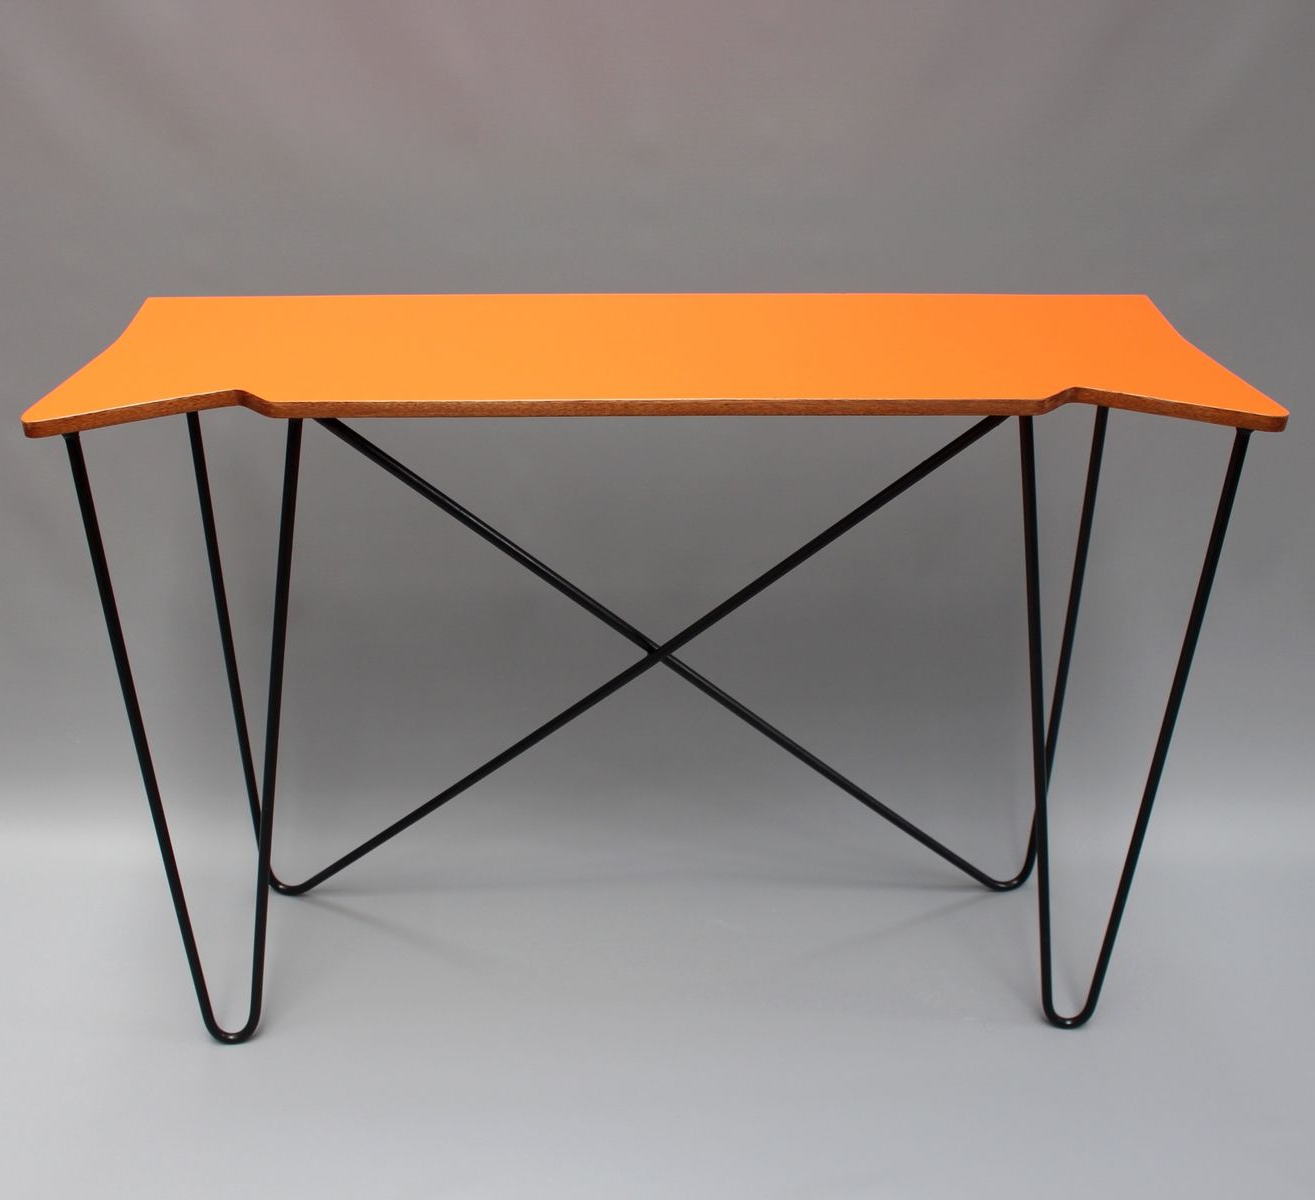 Vintage Orange Console Table 1980s For Sale At Pamono Bone Inlay Regarding Orange Inlay Console Tables (View 4 of 20)